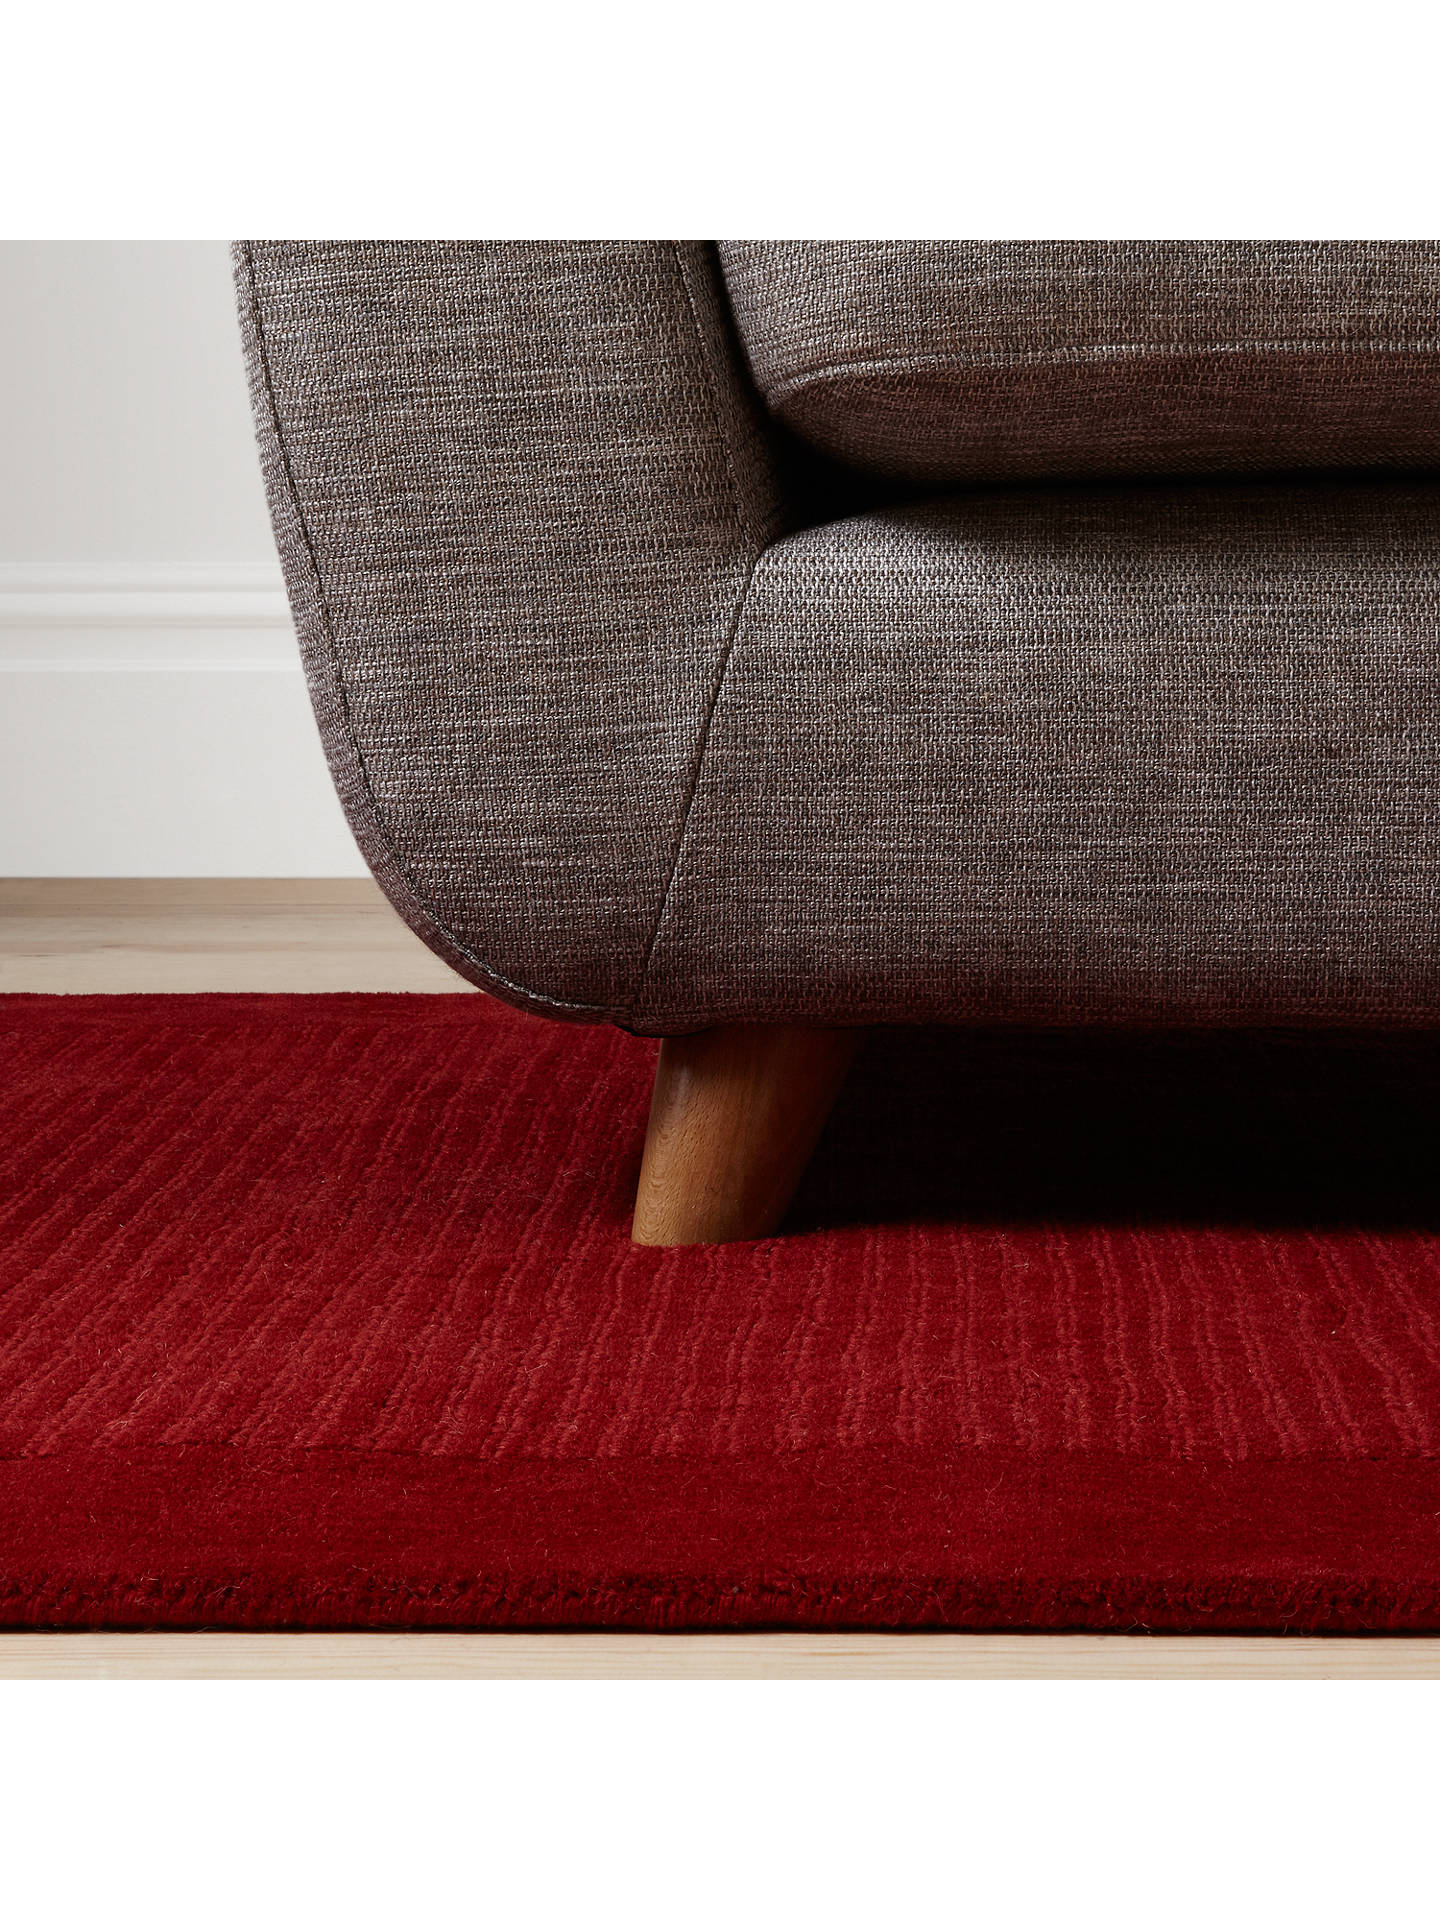 John Lewis Partners Perth Rug Red L300 X W200cm Online At Johnlewis